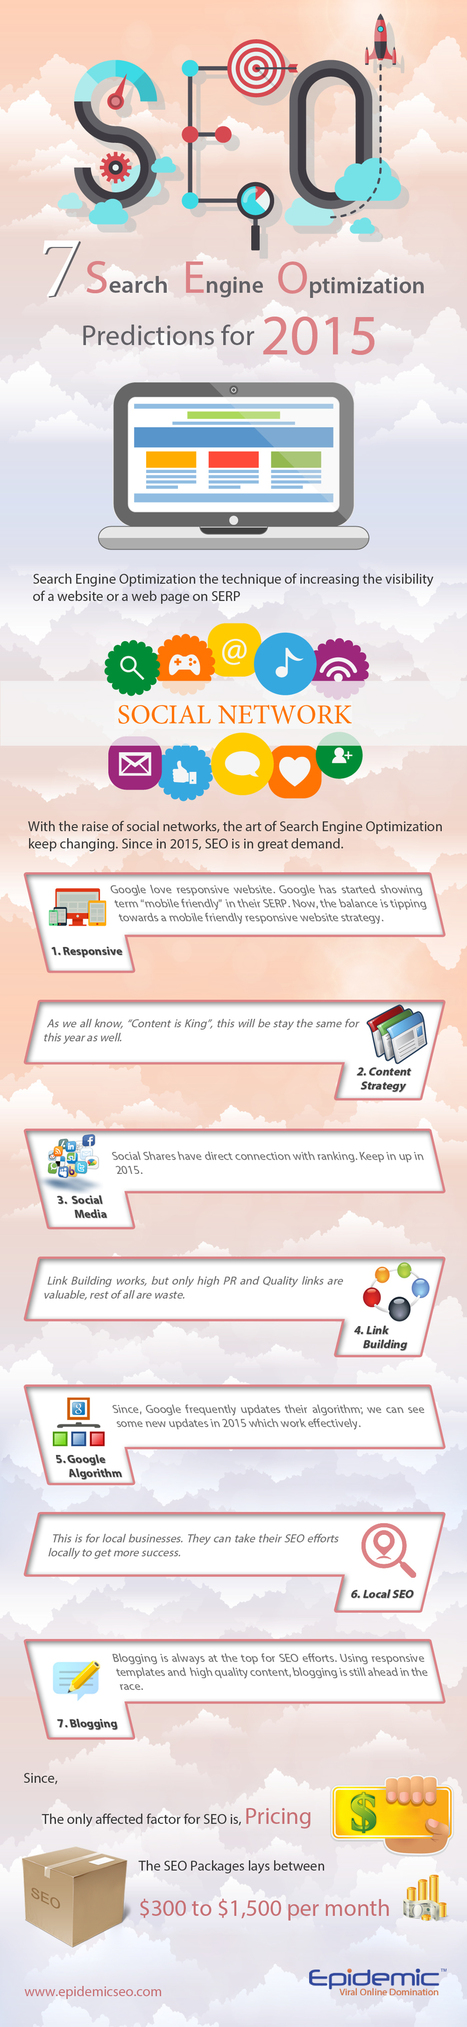 7 Search Engine Optimization Predictions for 2015 | Epidemic SEO | Scoop.it